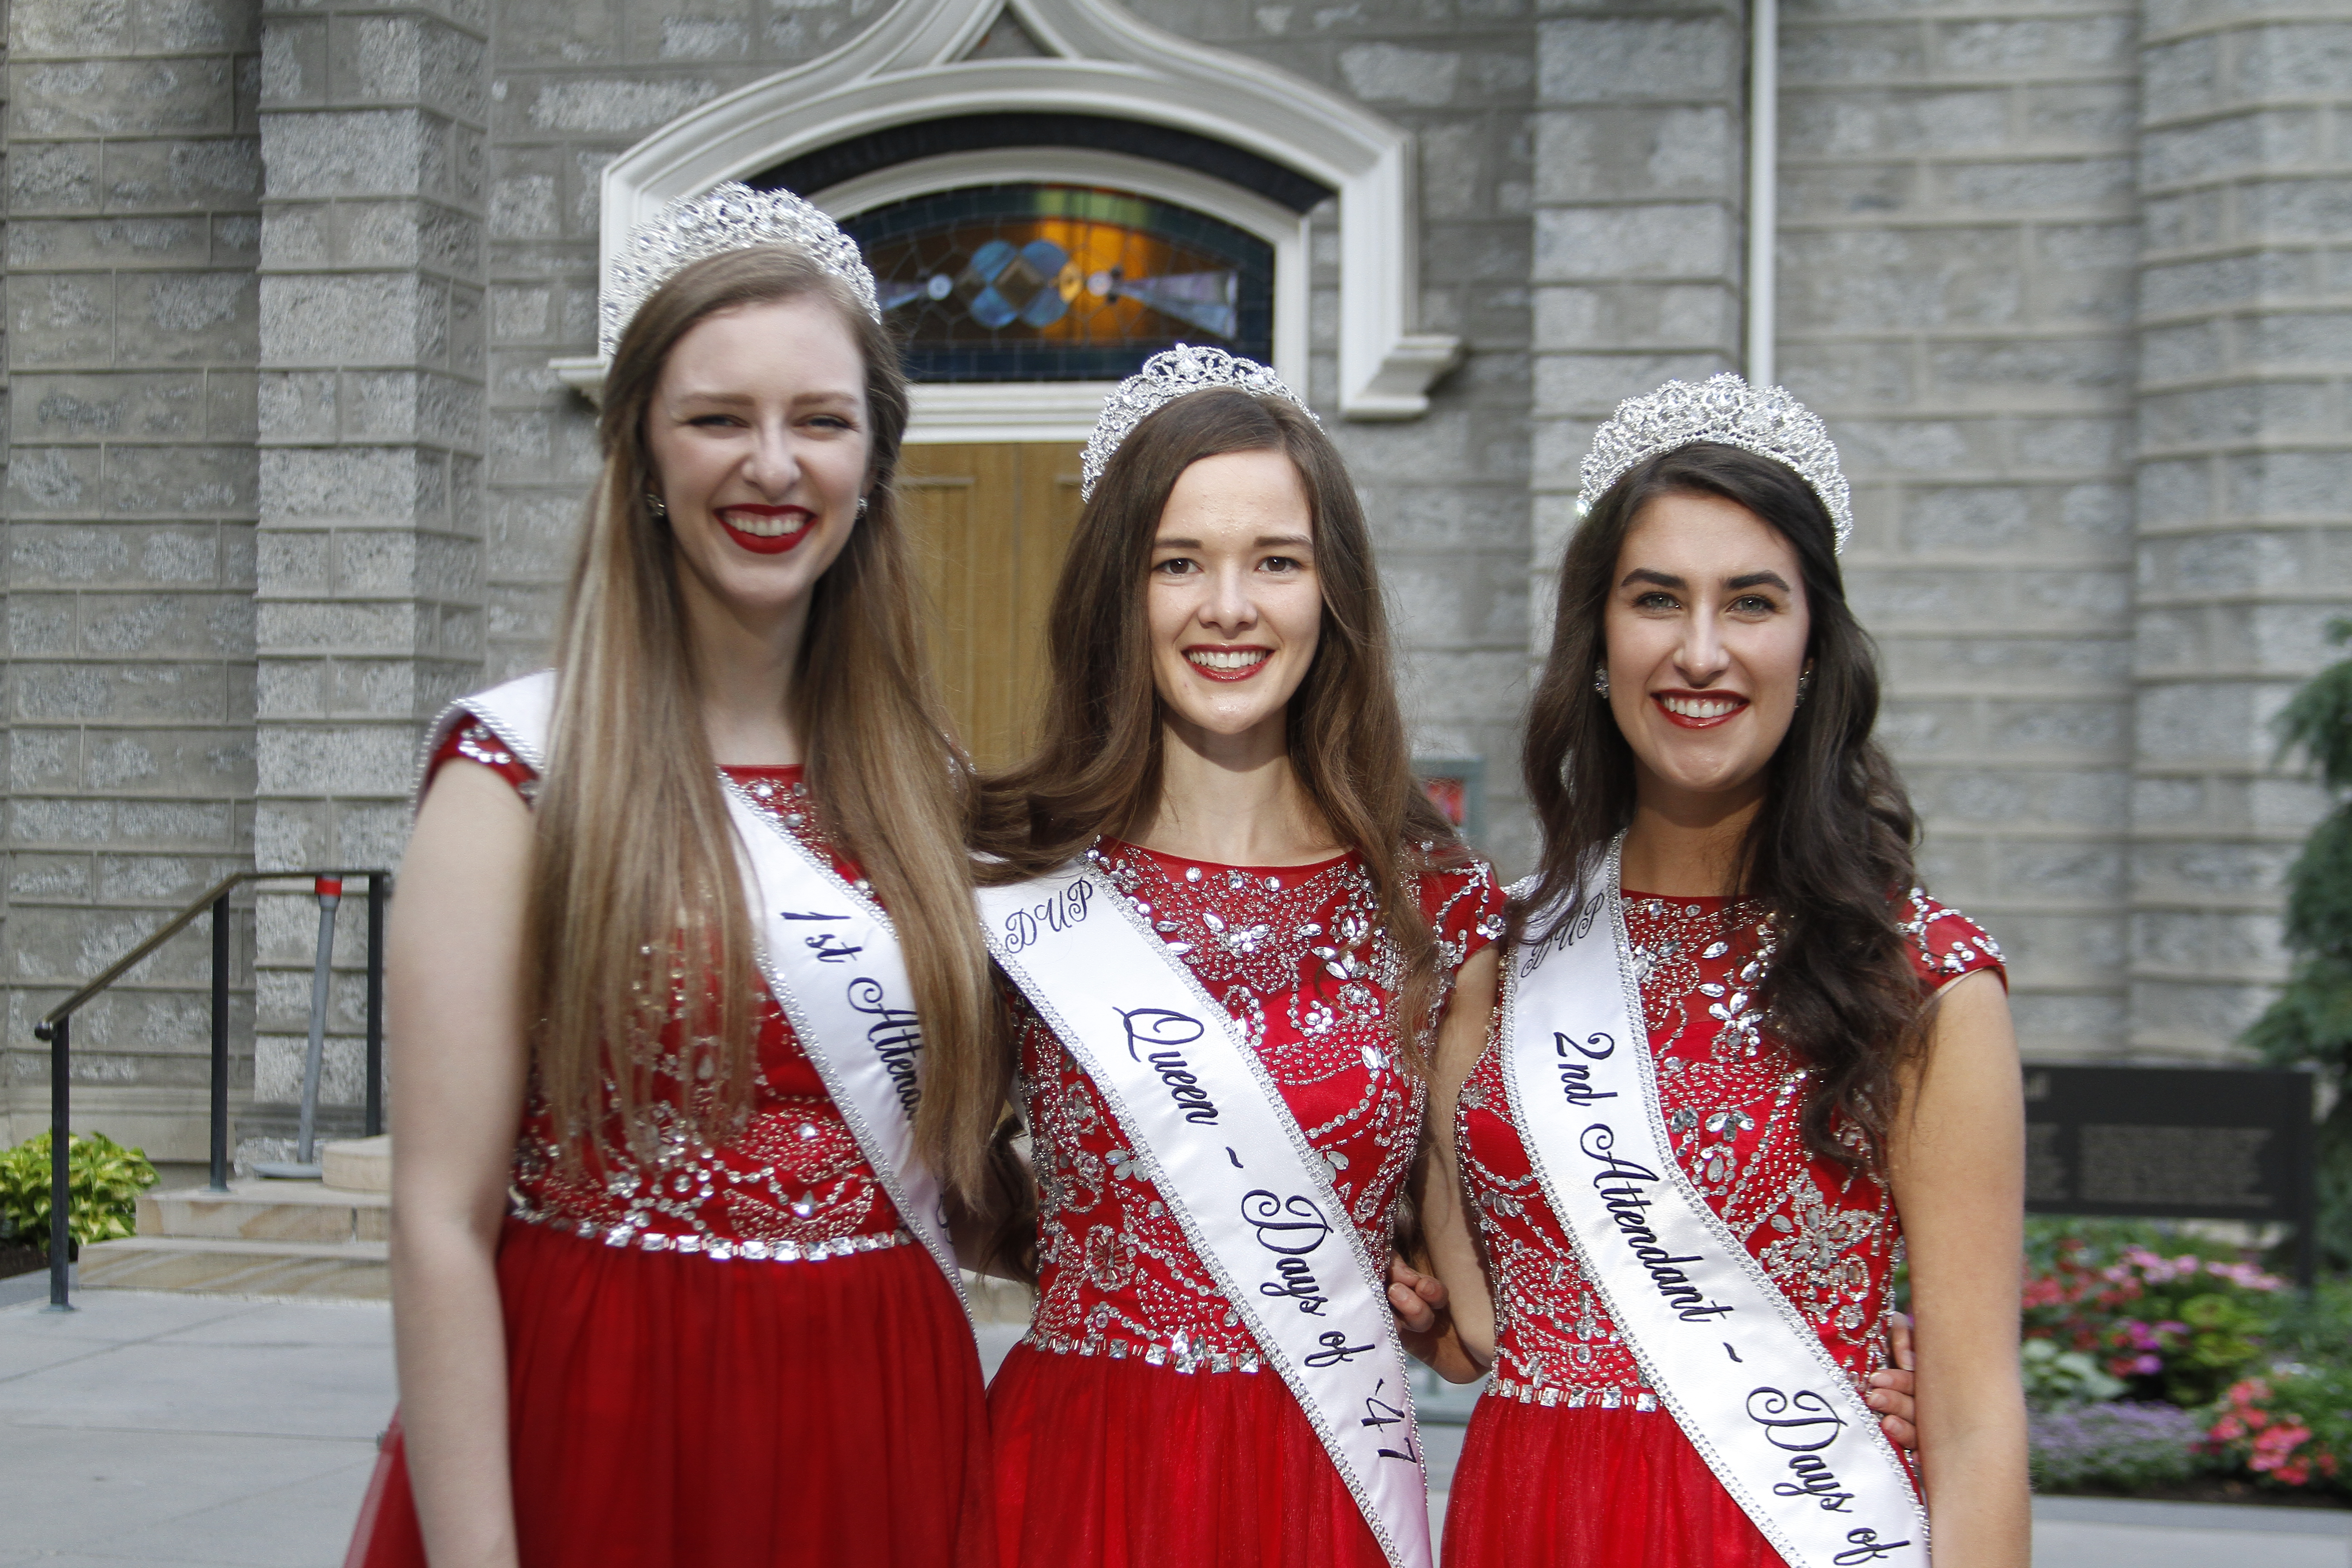 Anastasia Haner, the Days of '47 Queen, center, poses for a photo with Carli Sorenson, first attendant, left, and Emilie Clark, second attendant, right, in front of the Assembly Hall on Temple Square after the Days of '47 Sunrise Service on July 24, 2019.